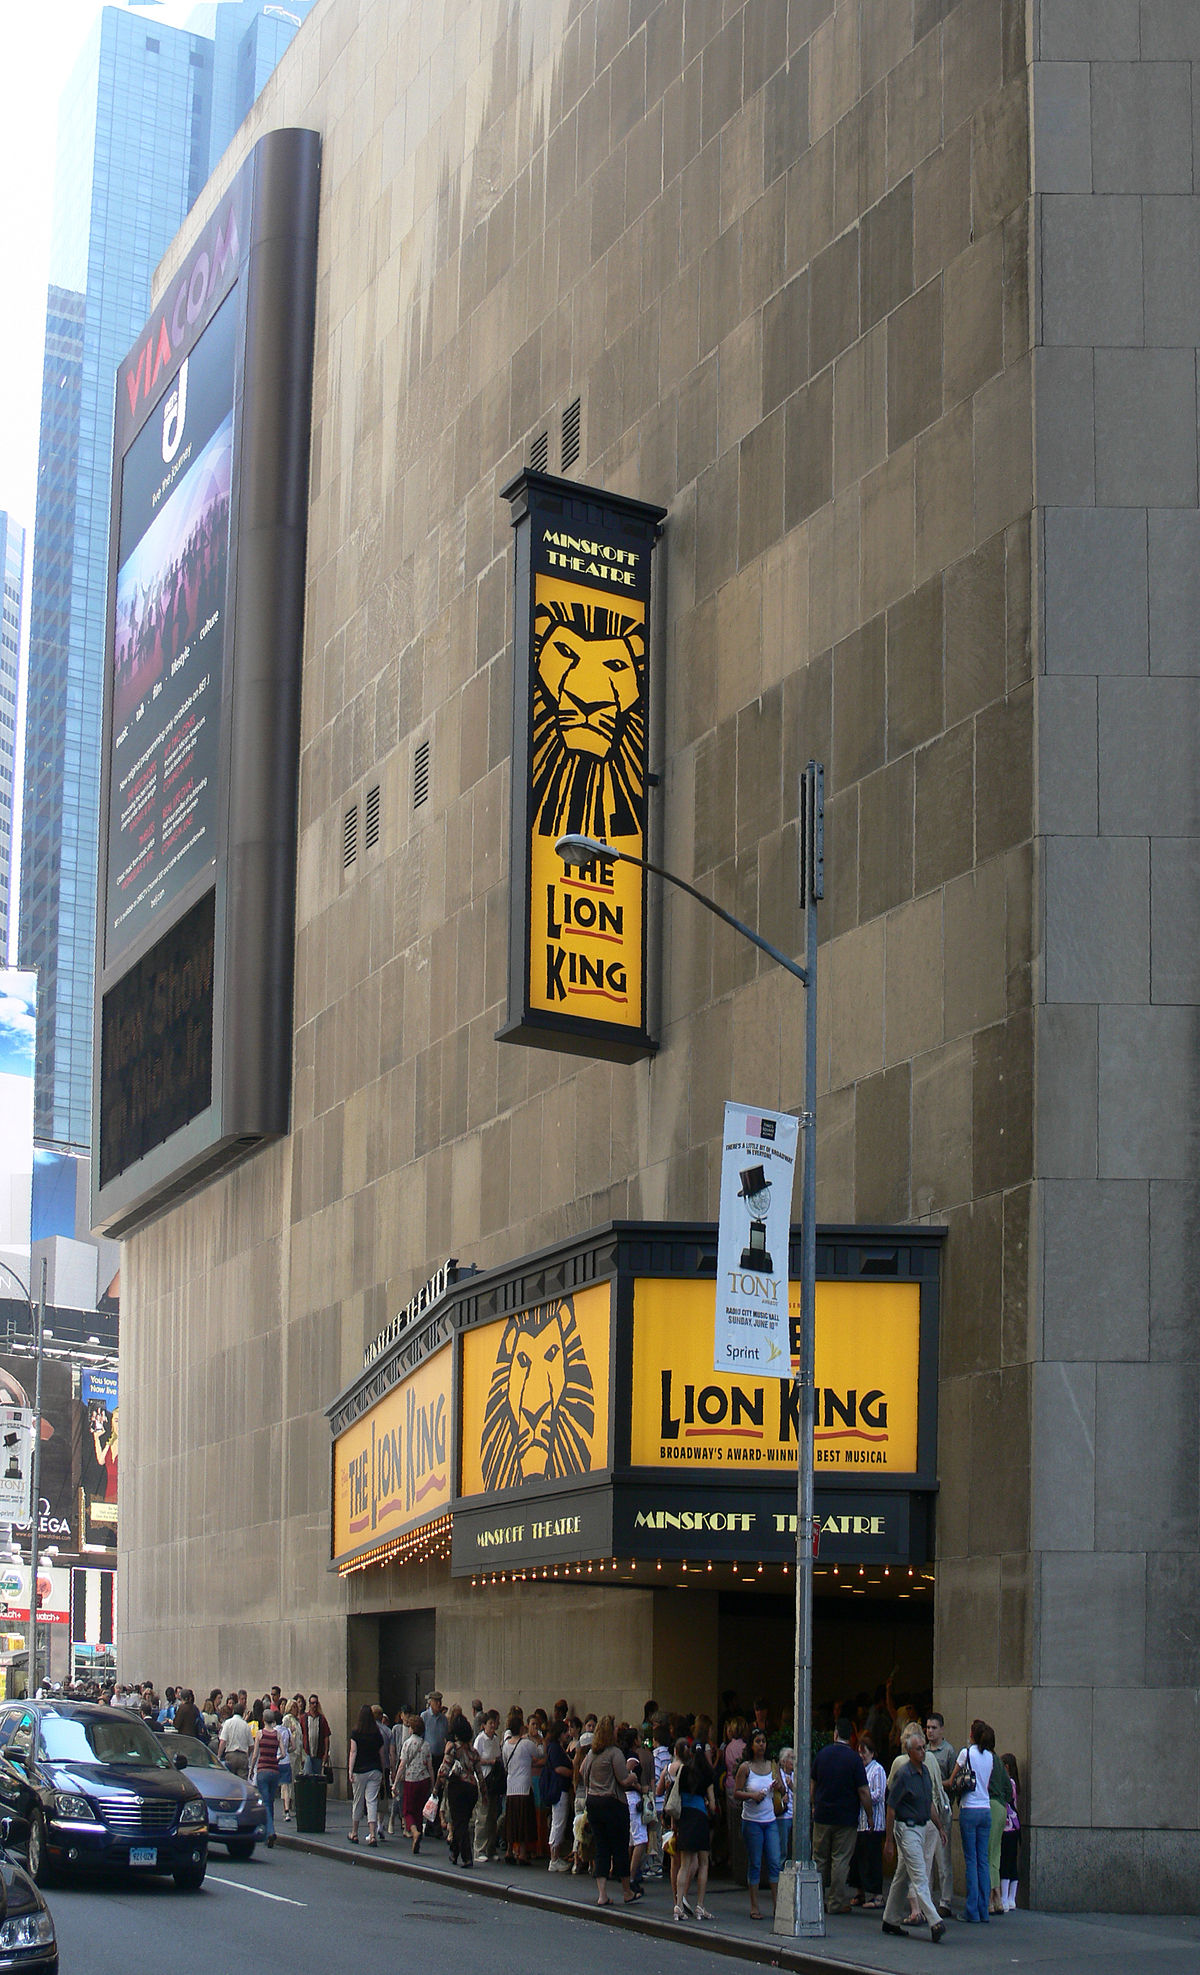 the lion king on broadway wikipedia